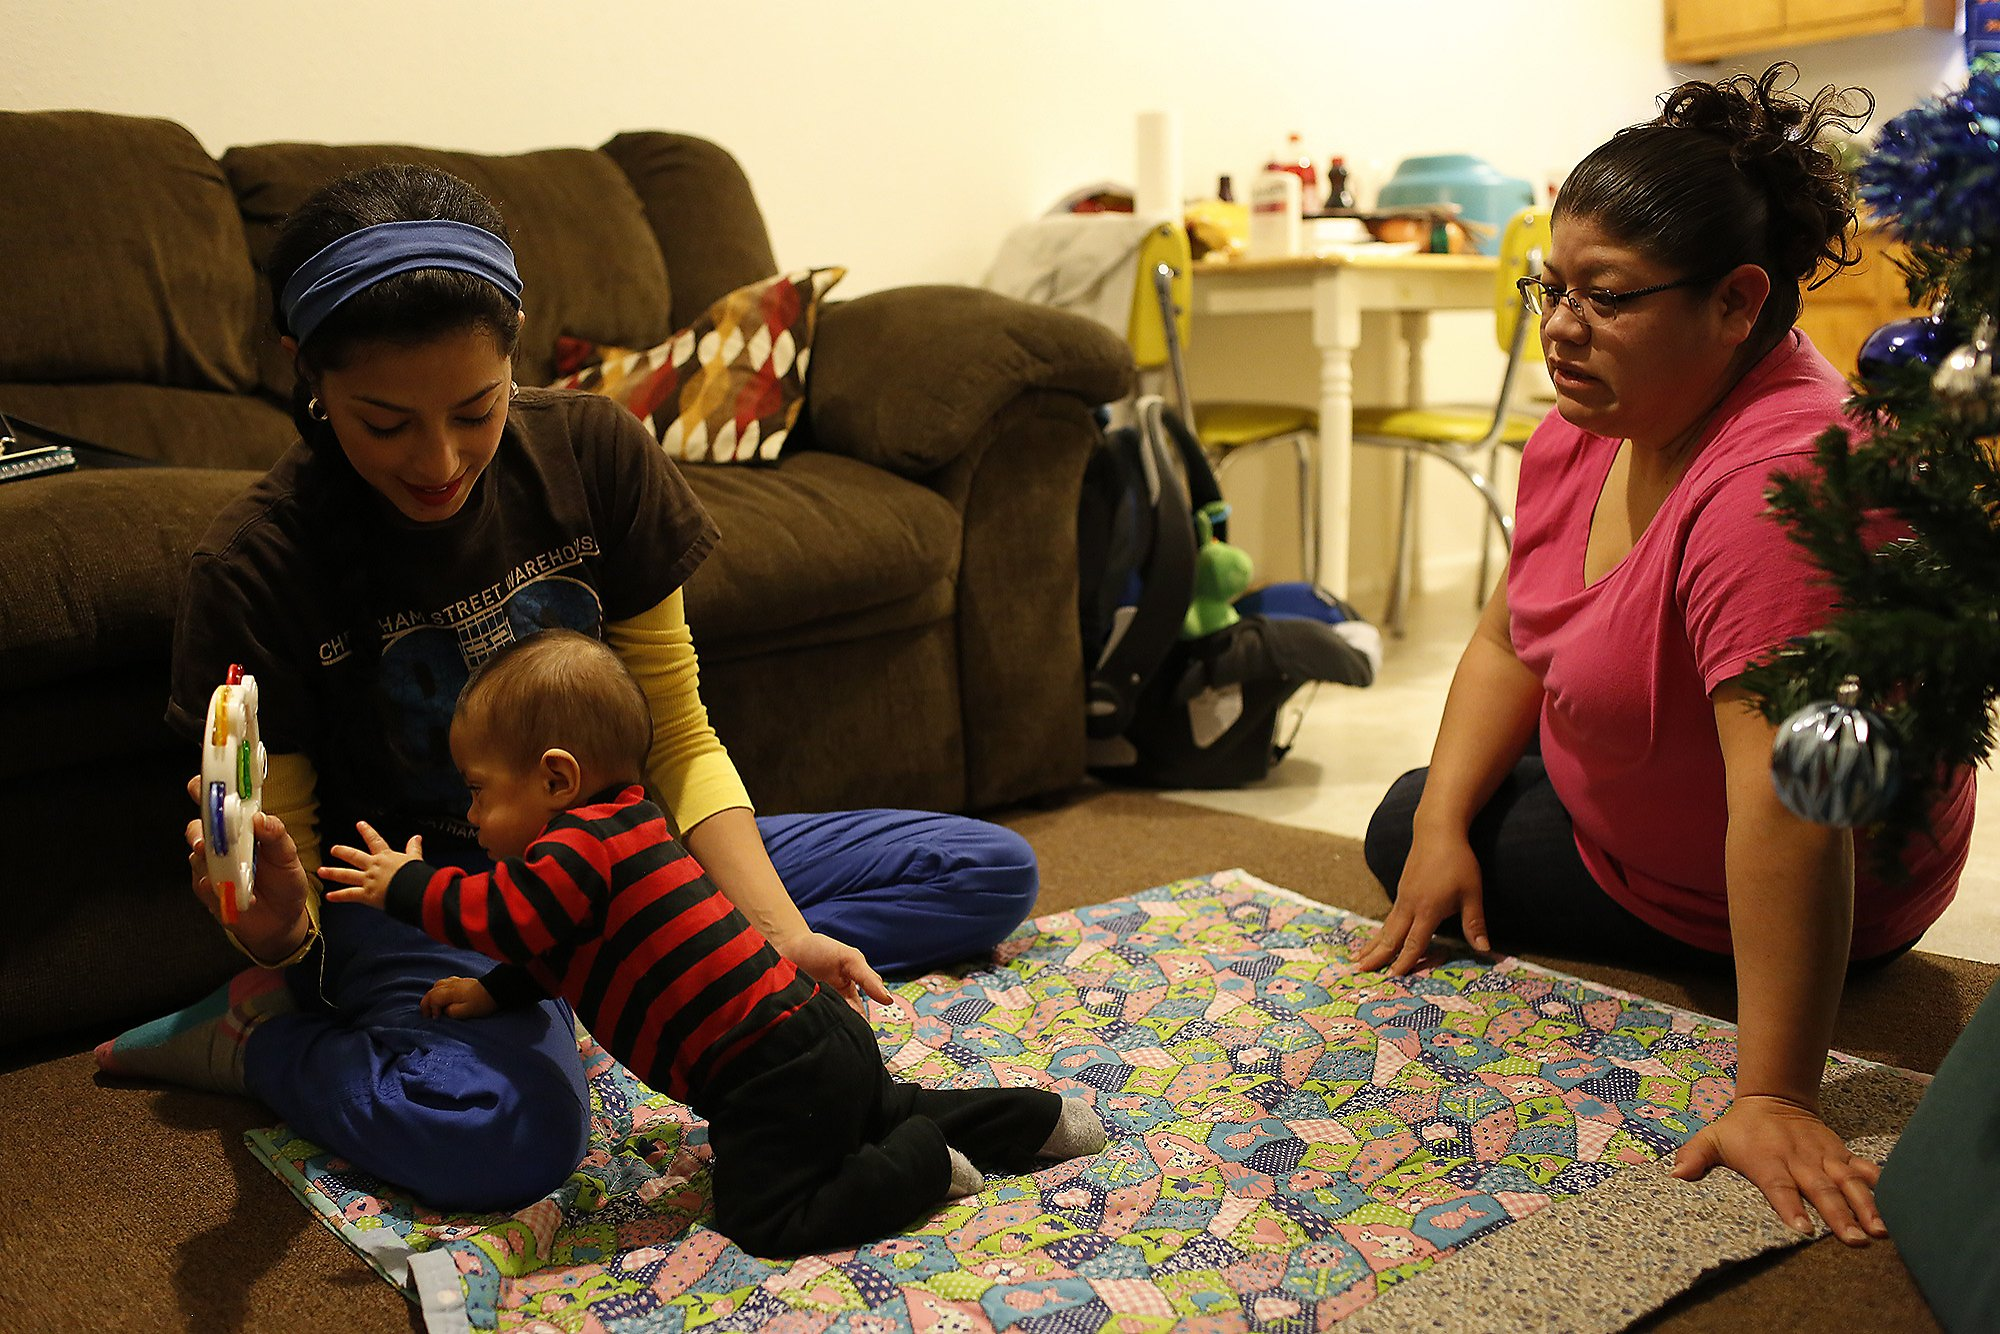 Report Reduced Funding Led To Therapy Cuts For Disabled Kids Houstonchronicle Com